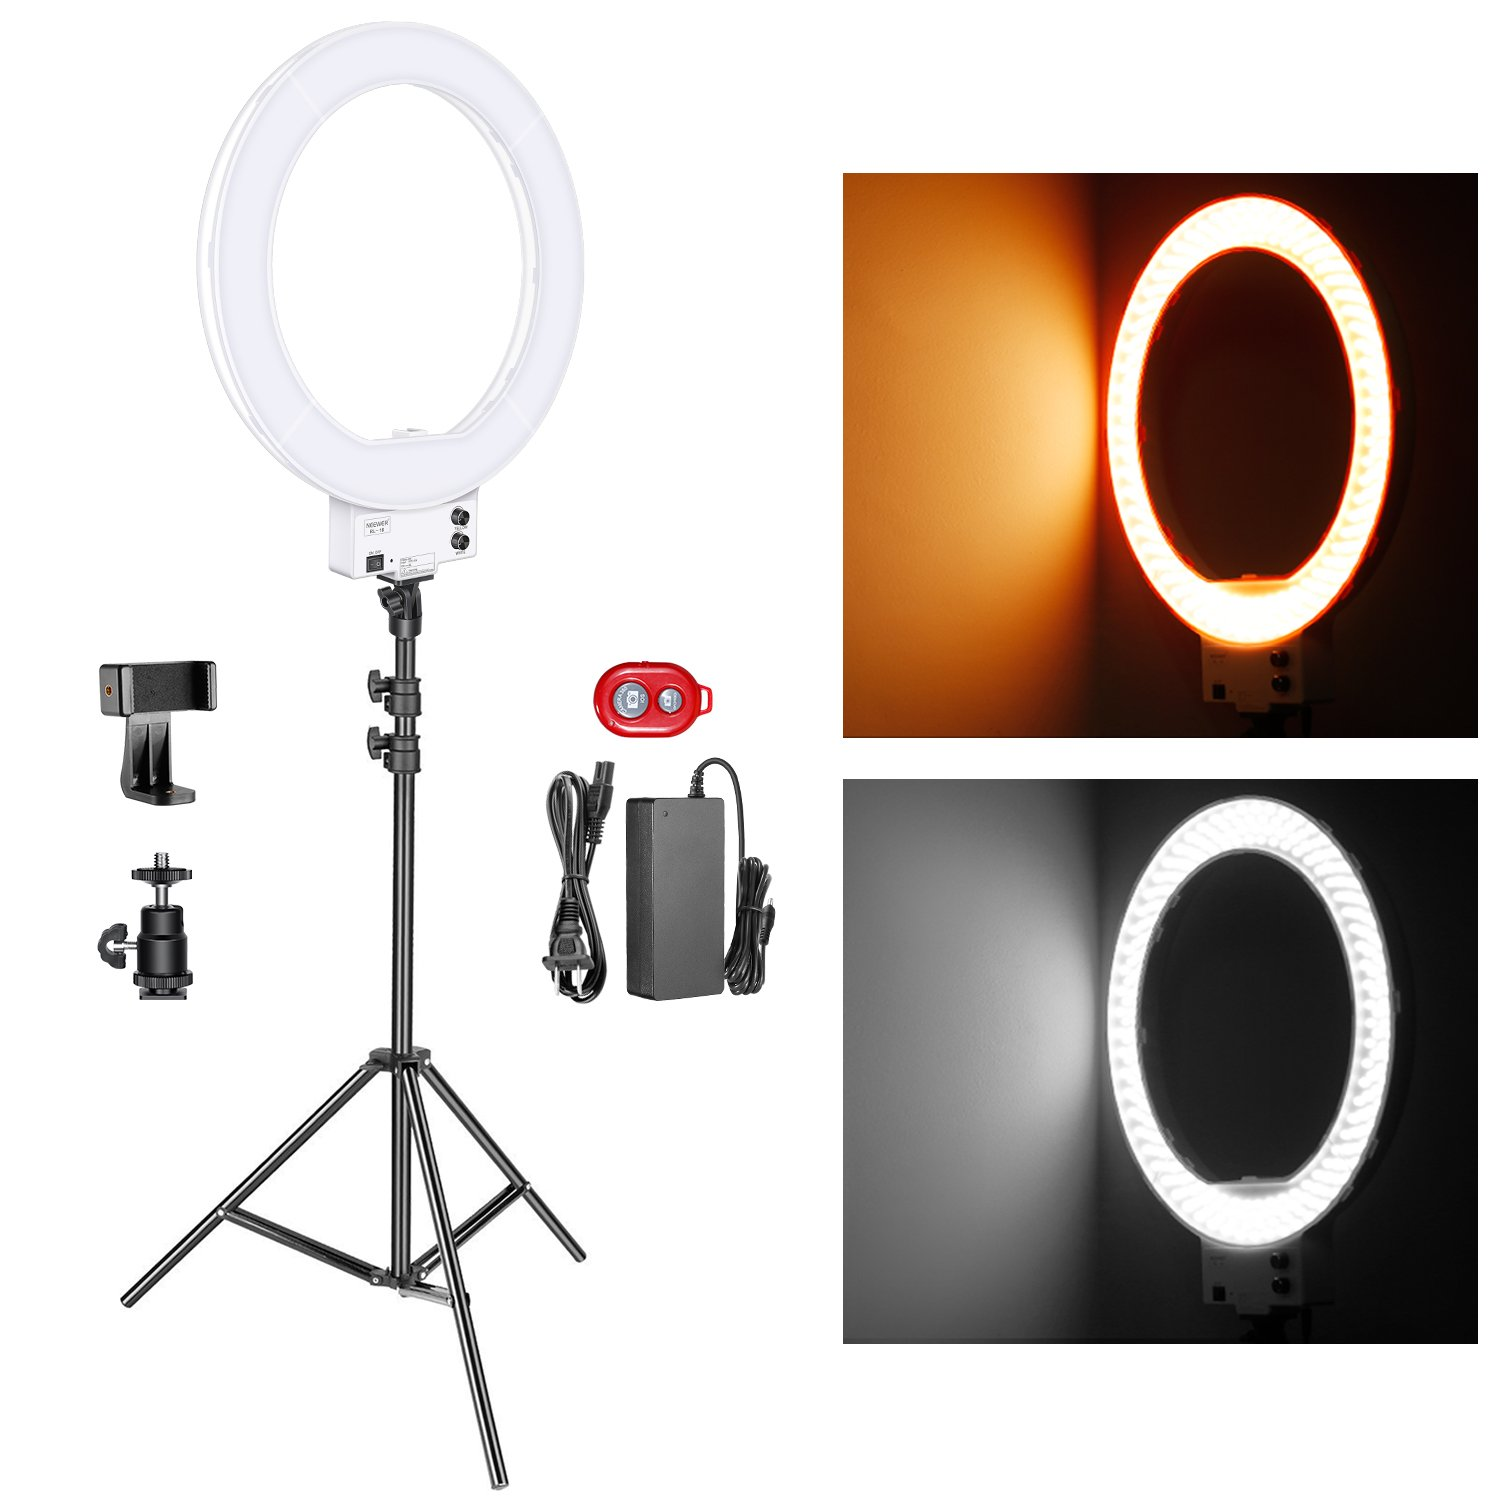 Neewer 18-inch White LED Ring Light with Silver Light Stand Lighting Kit Dimmable 50W 3200-5600K with Soft Filter, Hot Shoe Adapter, Cellphone Holder for Make-up Video Shooting 10094186